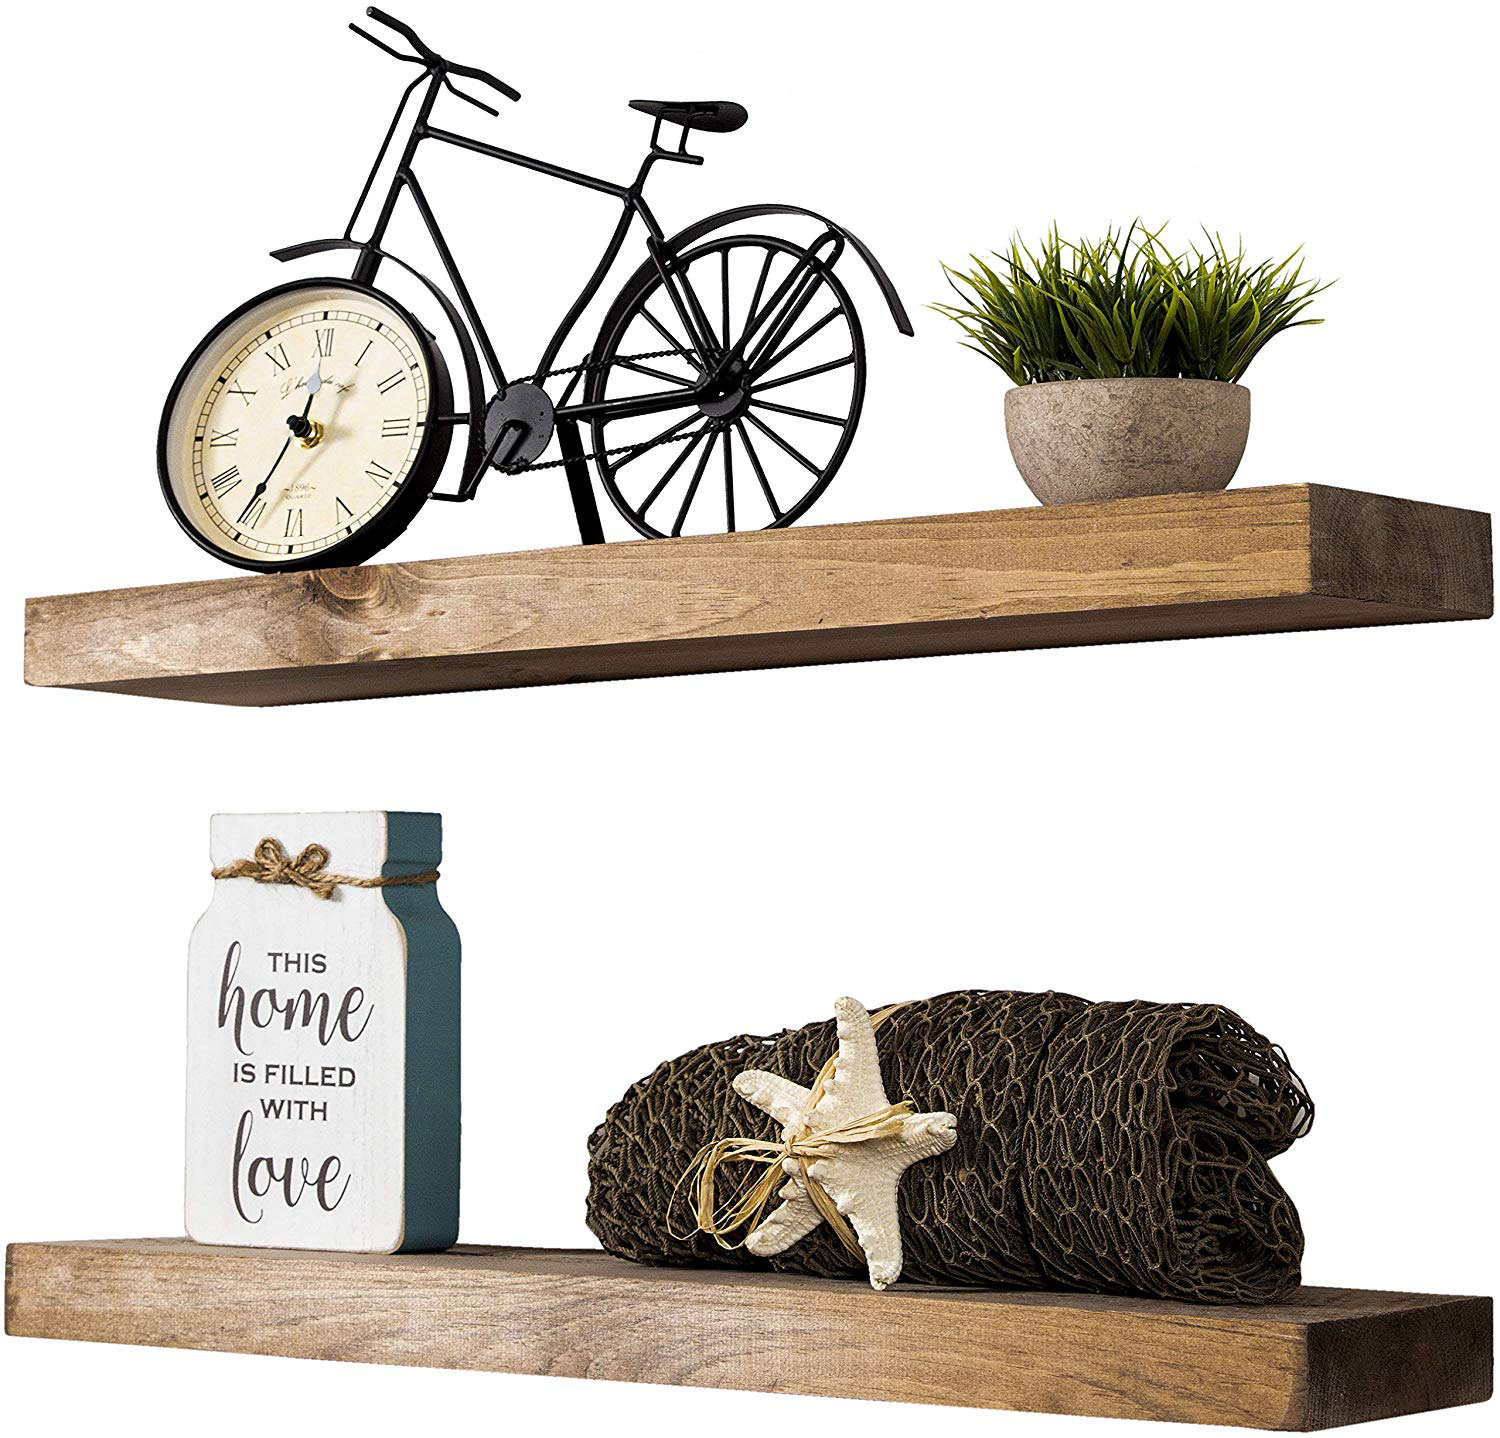 Home Organization Tools Approved by Designers - Floating Shelves